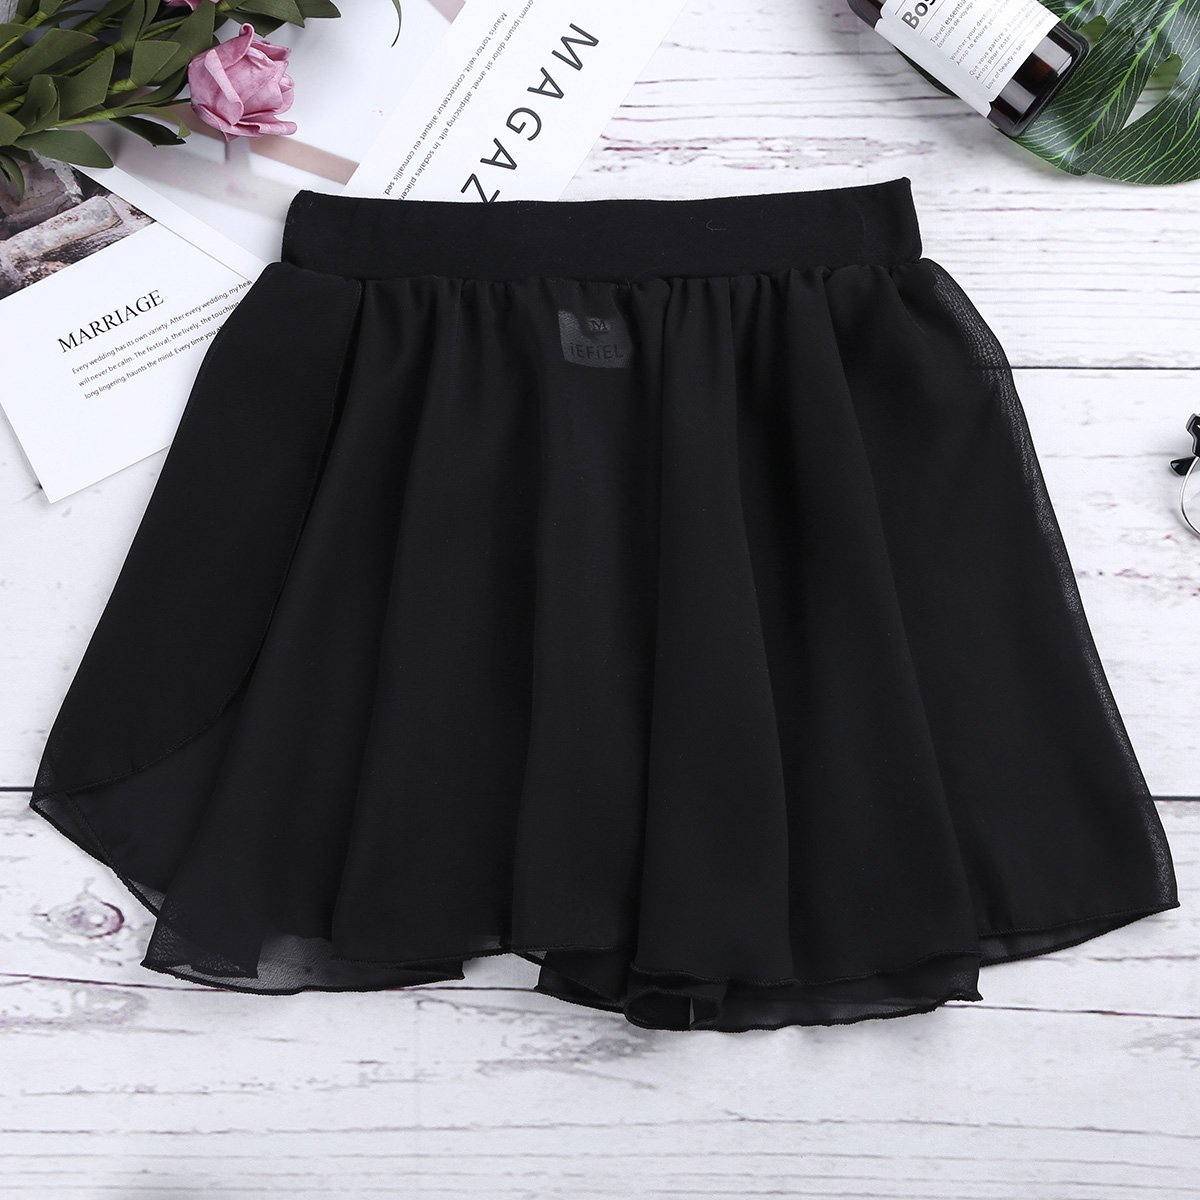 Freebily Kids Girls Dance Basic Classic Chiffon Mini Pull-On Wrap Skirt Black 7-8 by Freebily (Image #5)